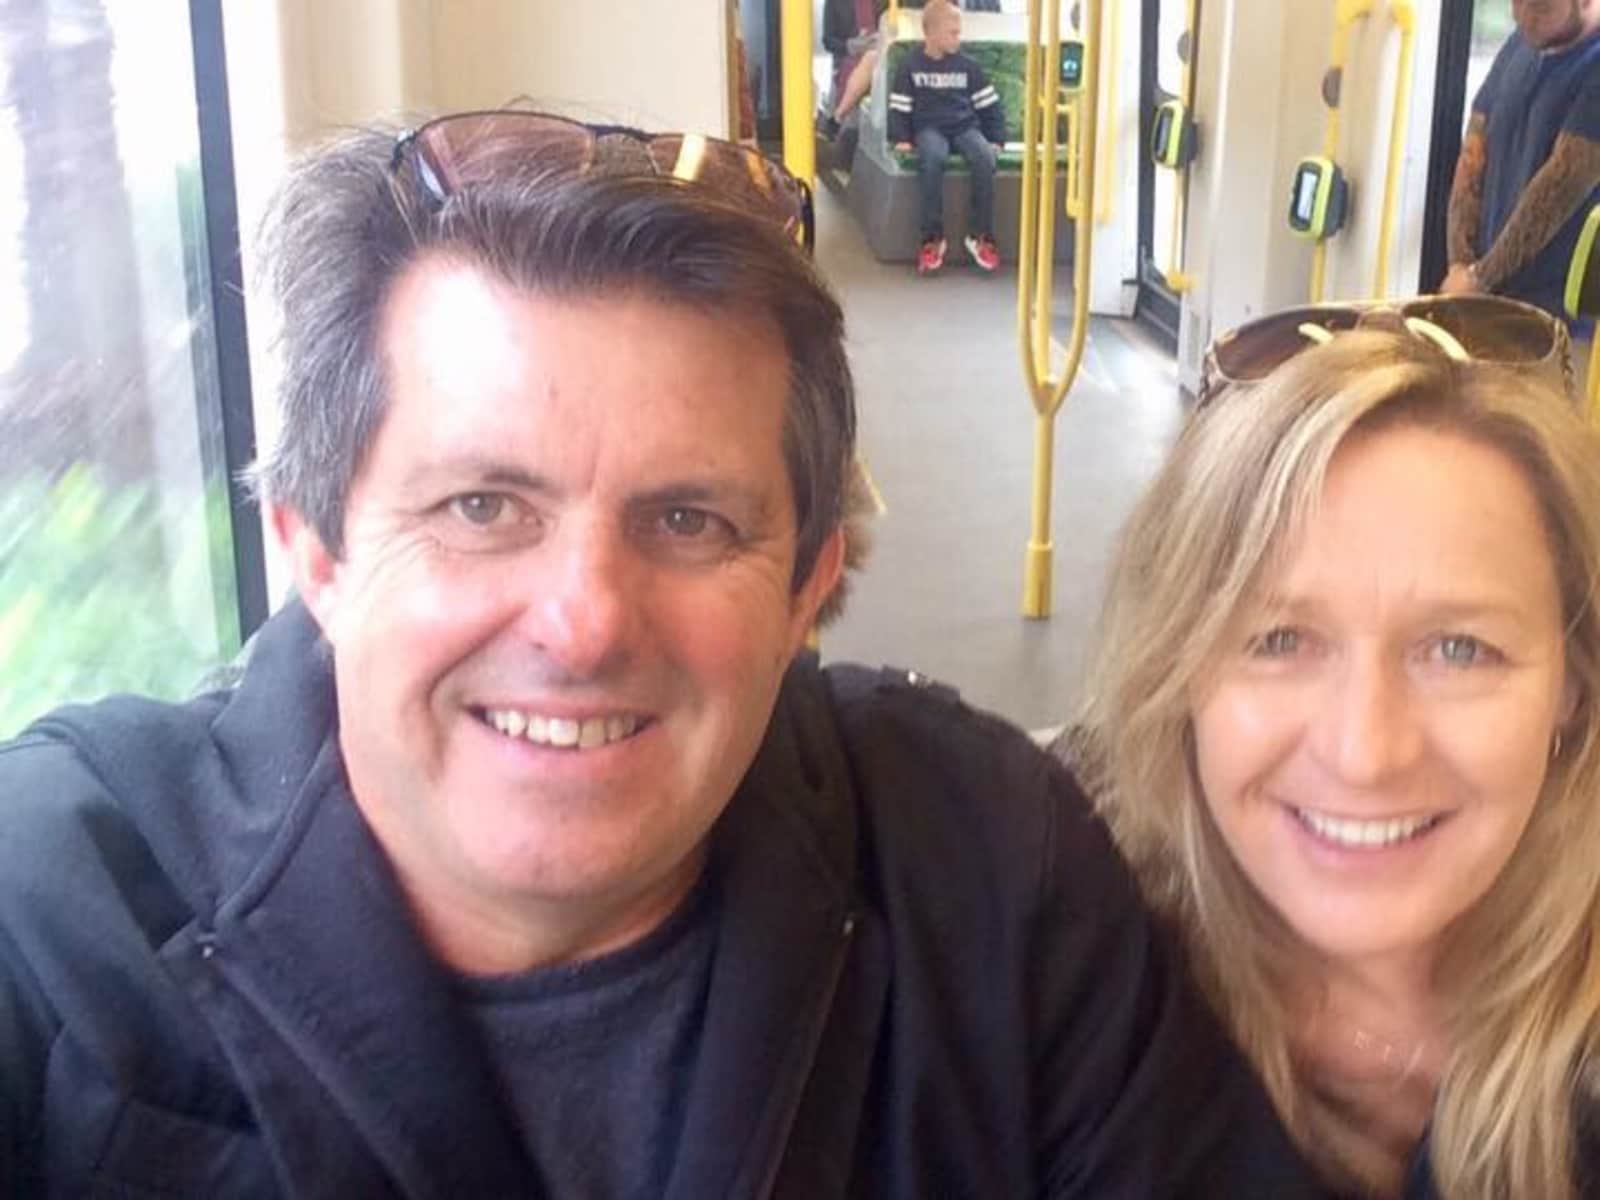 Geoff & Tracy from Matcham, New South Wales, Australia